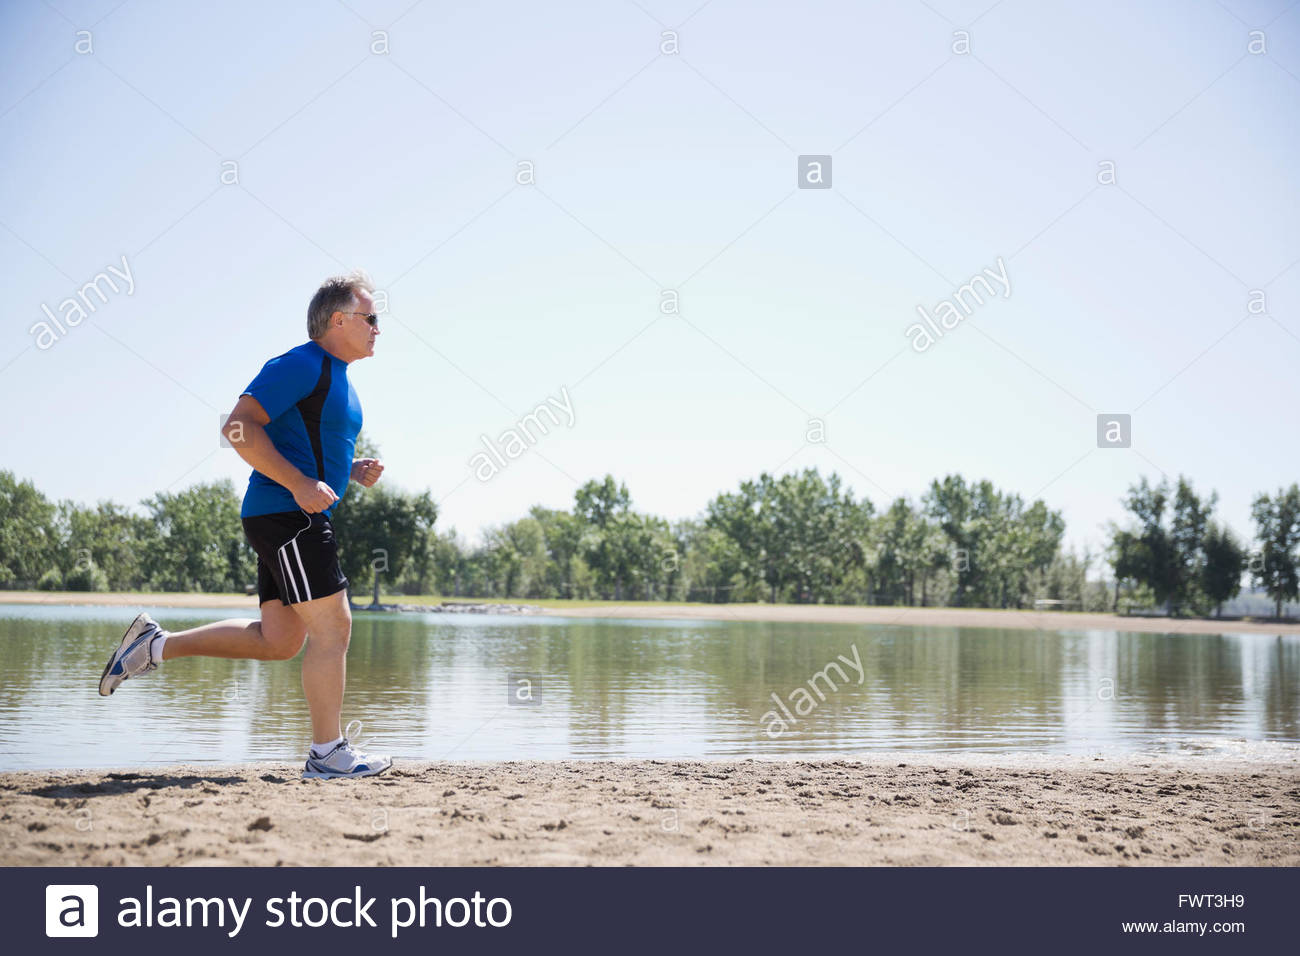 Profile shot of middle-aged man jogging on beach - Stock Image